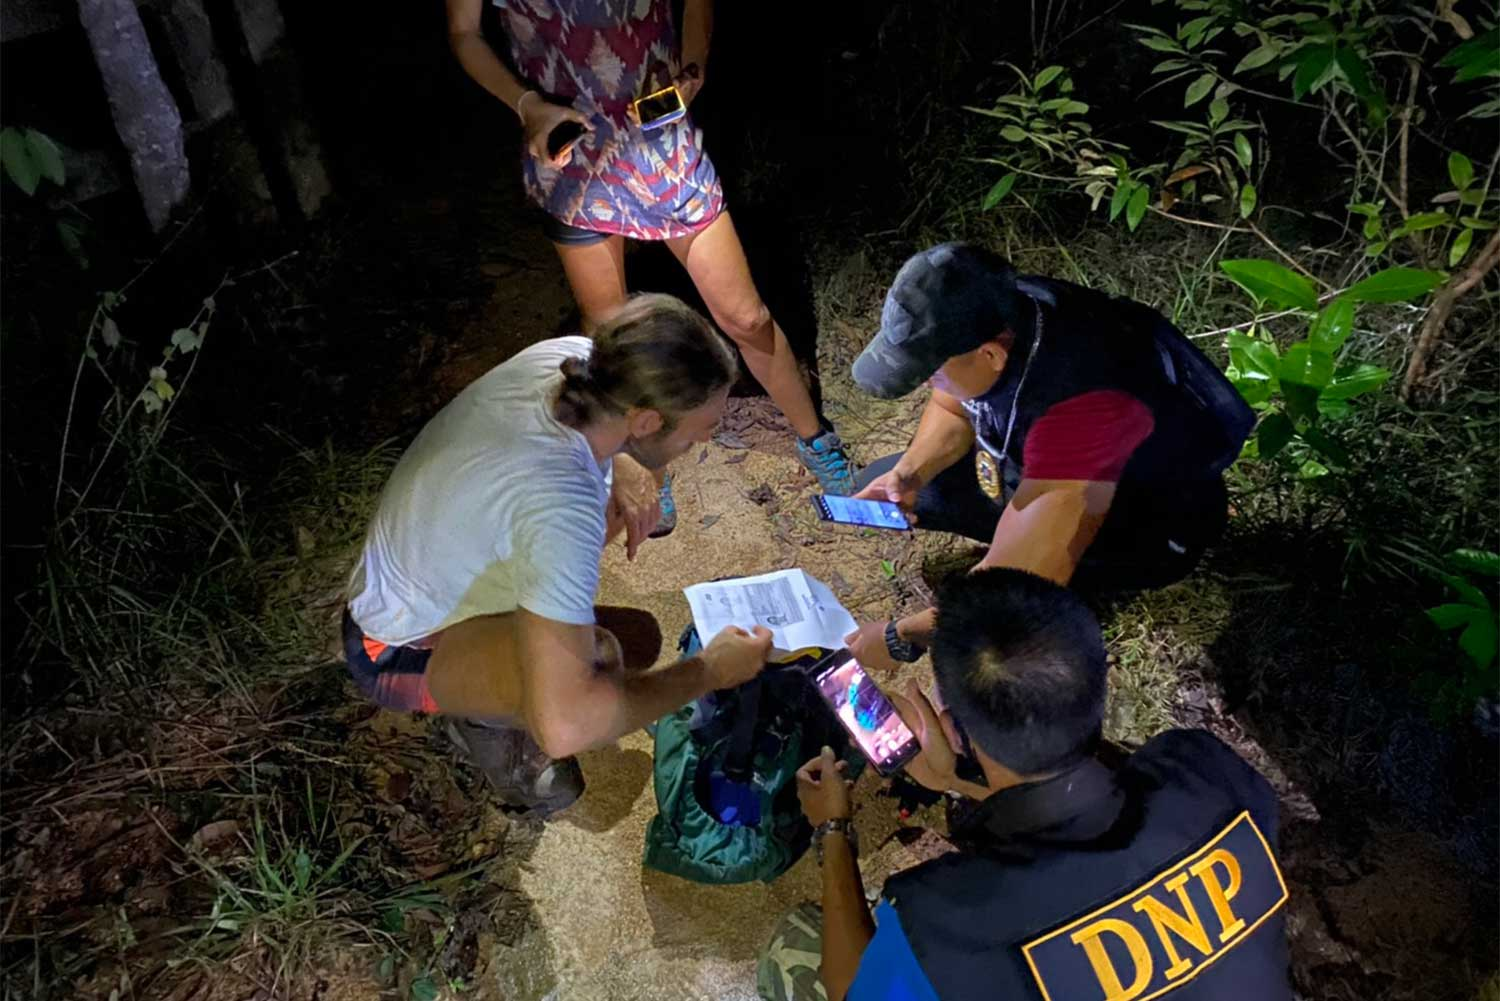 Rescuers find the Spanish couple who were lost in the forest on Koh Phangan in Surat Thani on Thursday. The search lasted more than six hours, concluding late Thursday night. (Photo: Supplied/Supapong Chaolan)